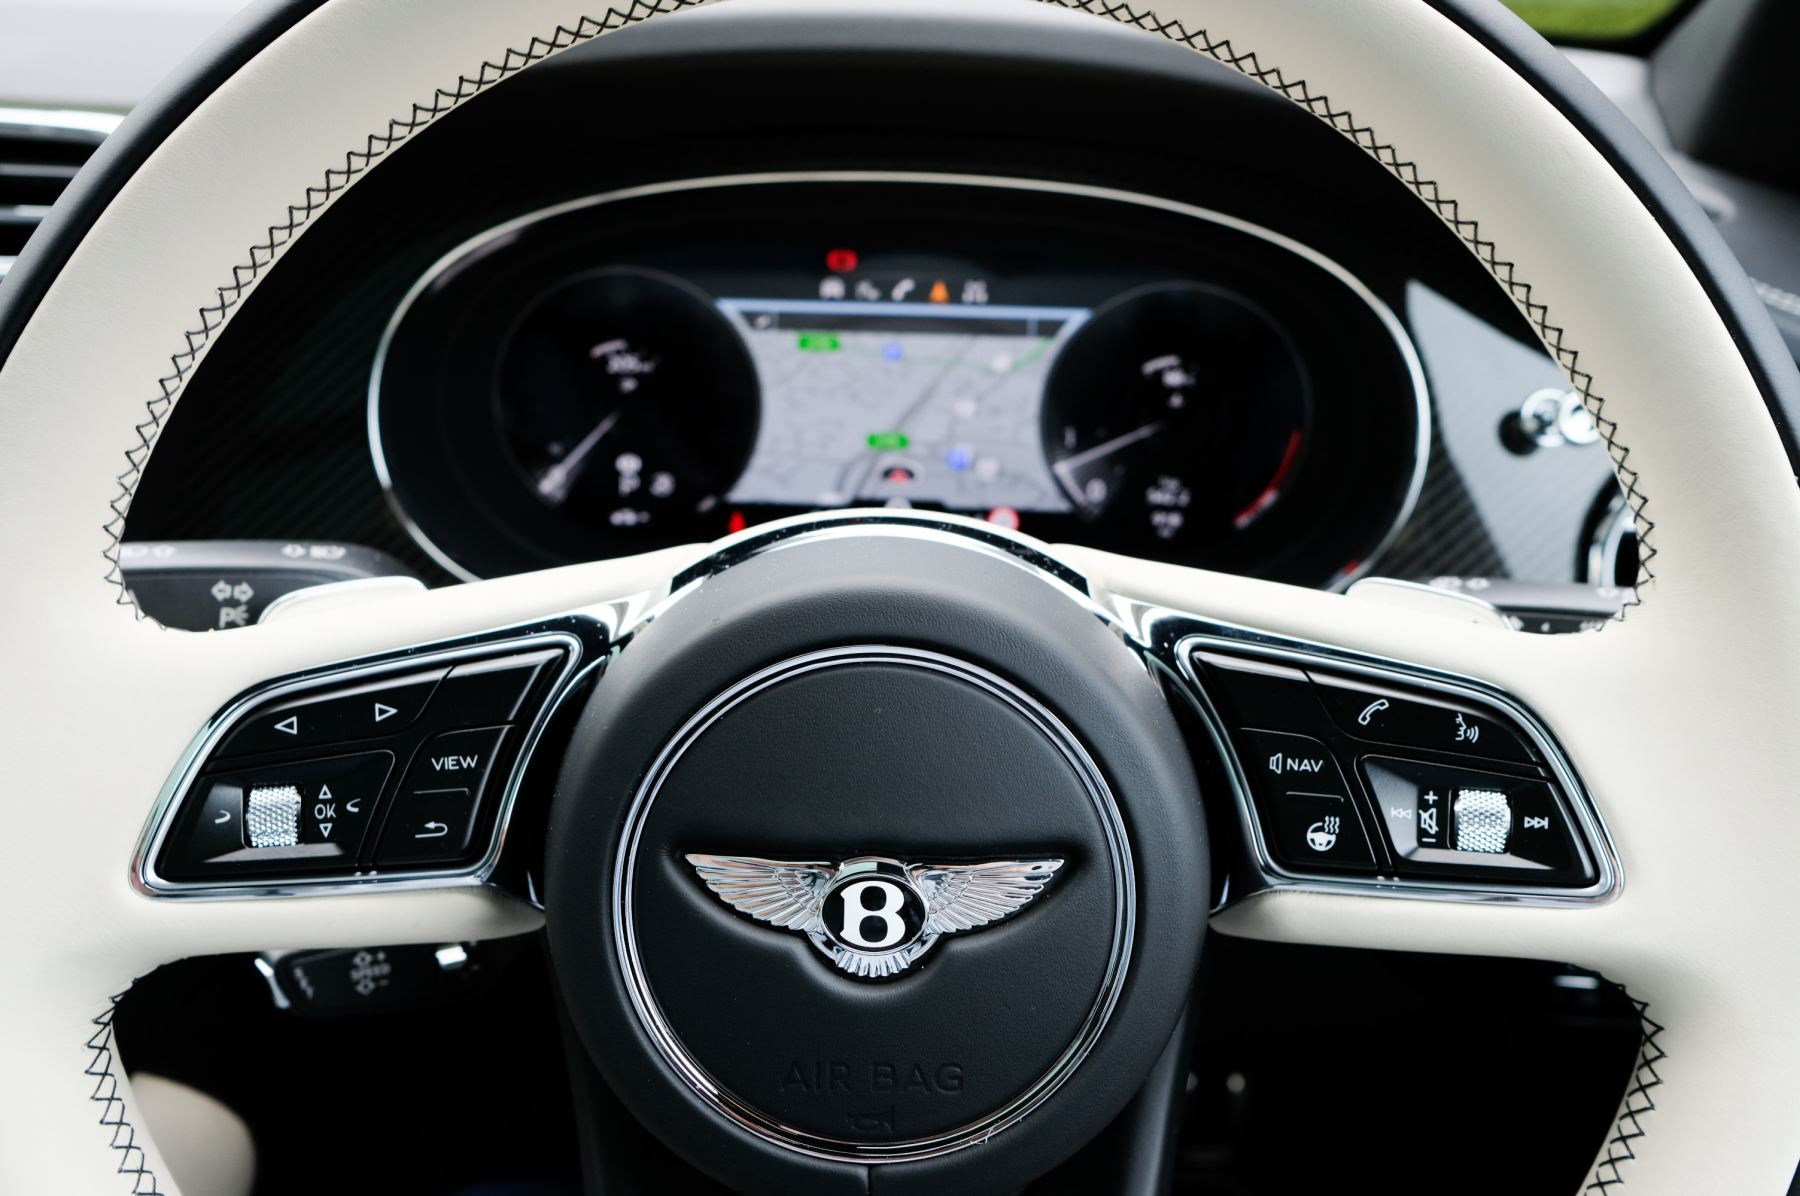 Bentley Bentayga 4.0 V8 5dr [4 Seat] - First Edition - All Terrain Specification image 18